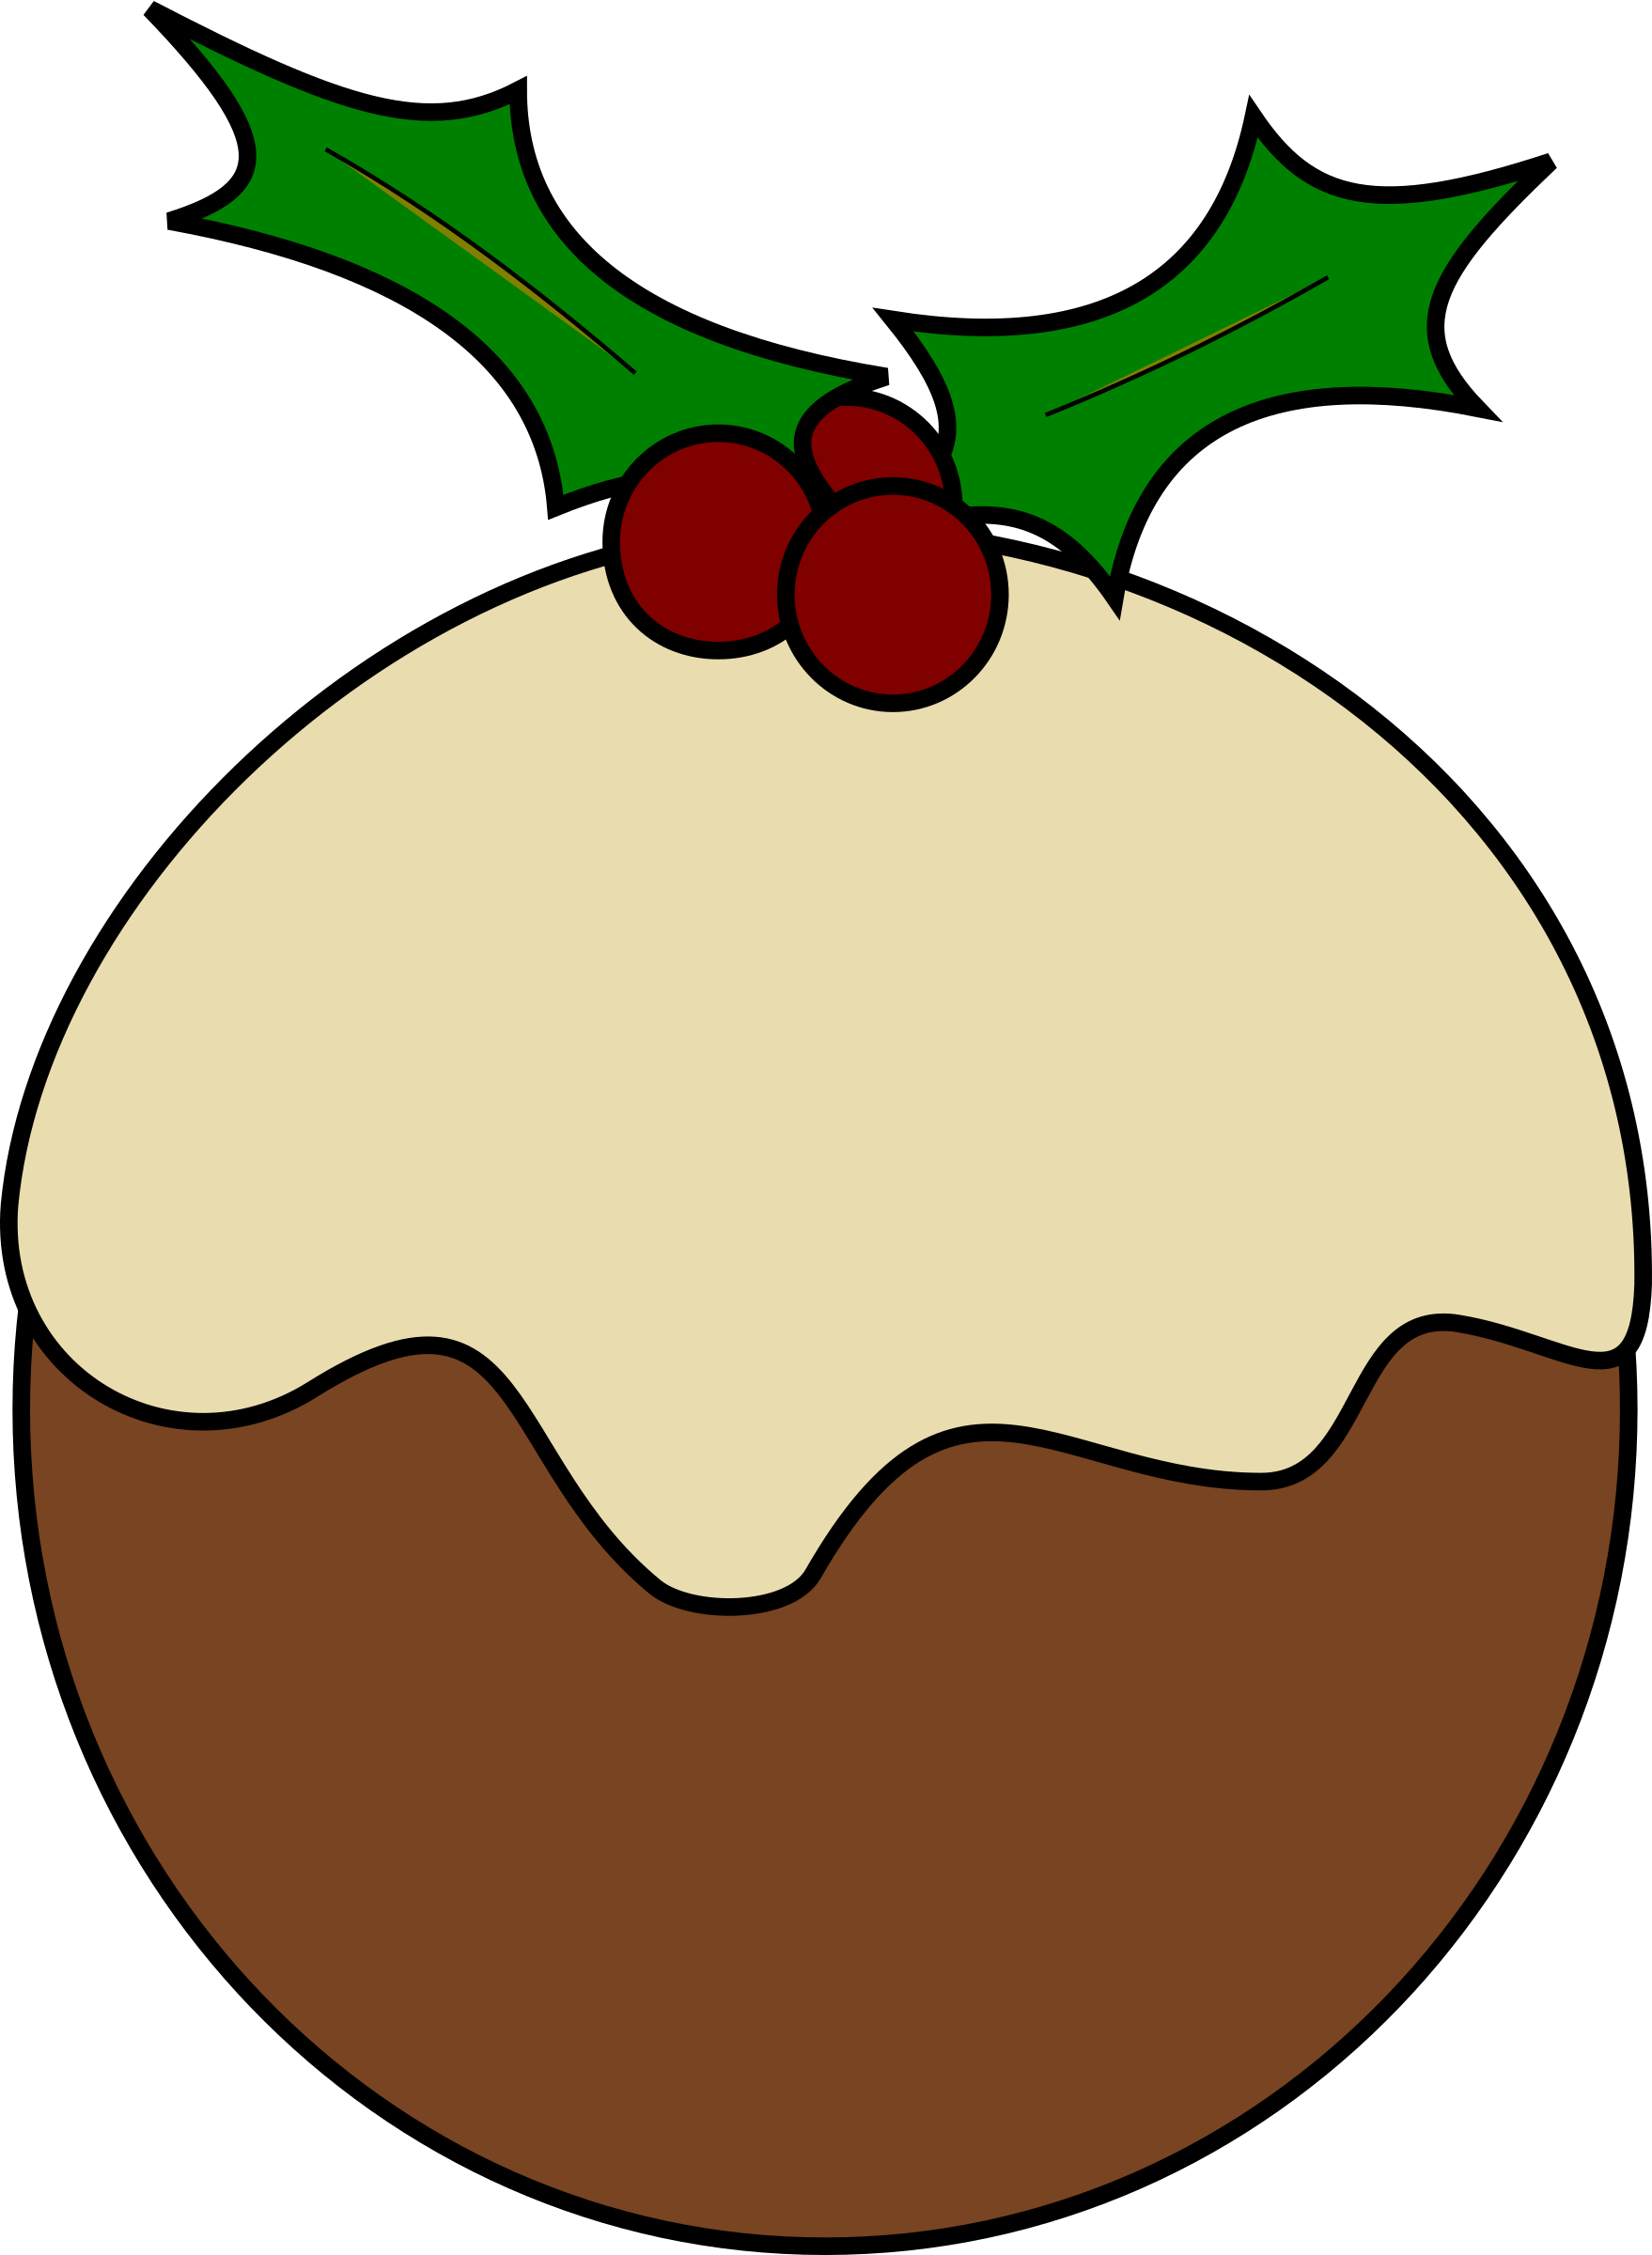 Christmas pudding by karderio